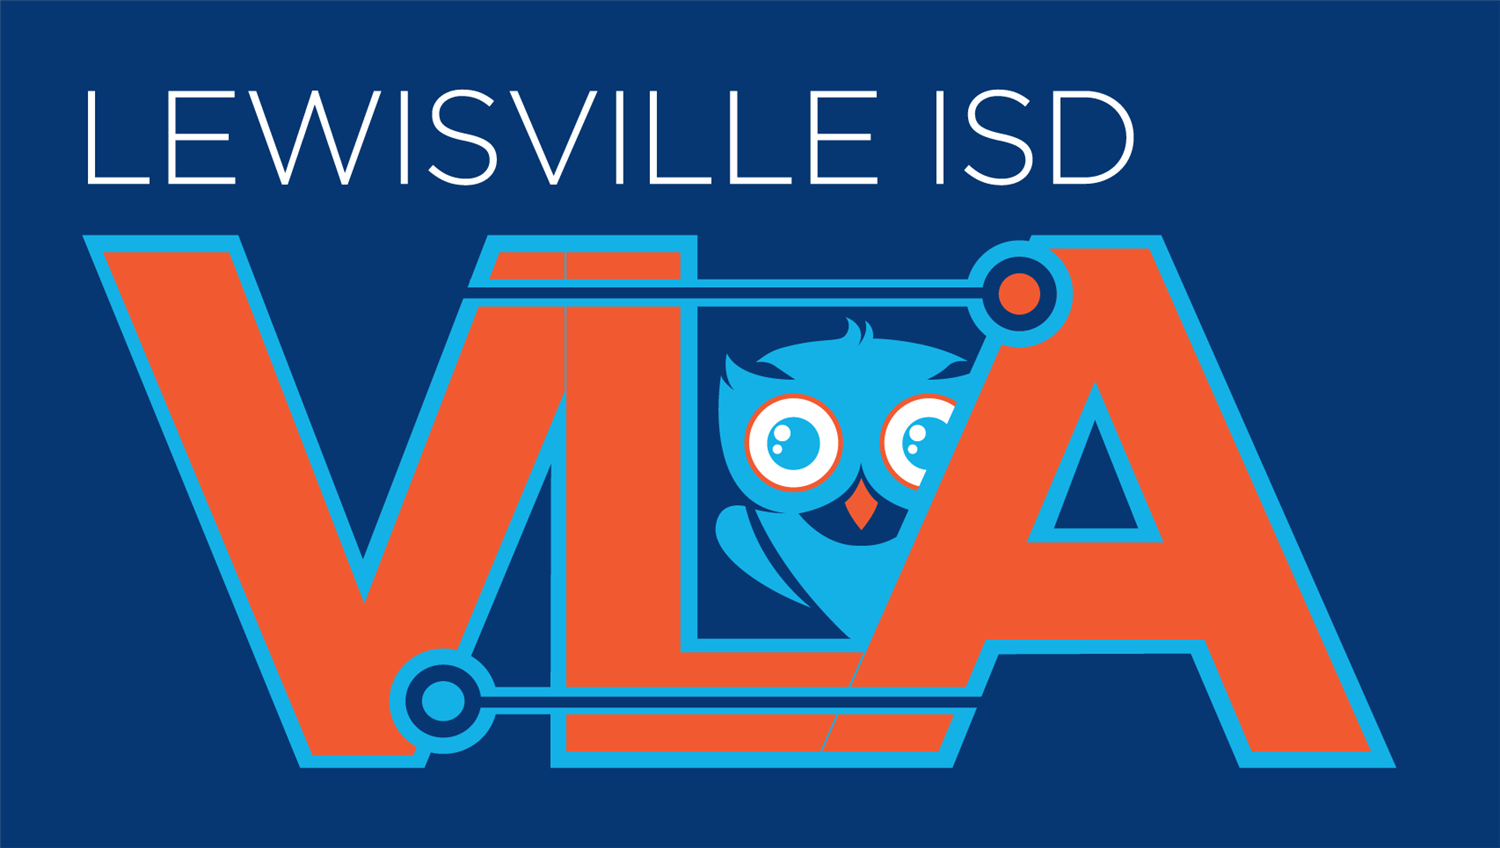 LISD Virtual Learning Academy Director Recognized for Advocacy Efforts